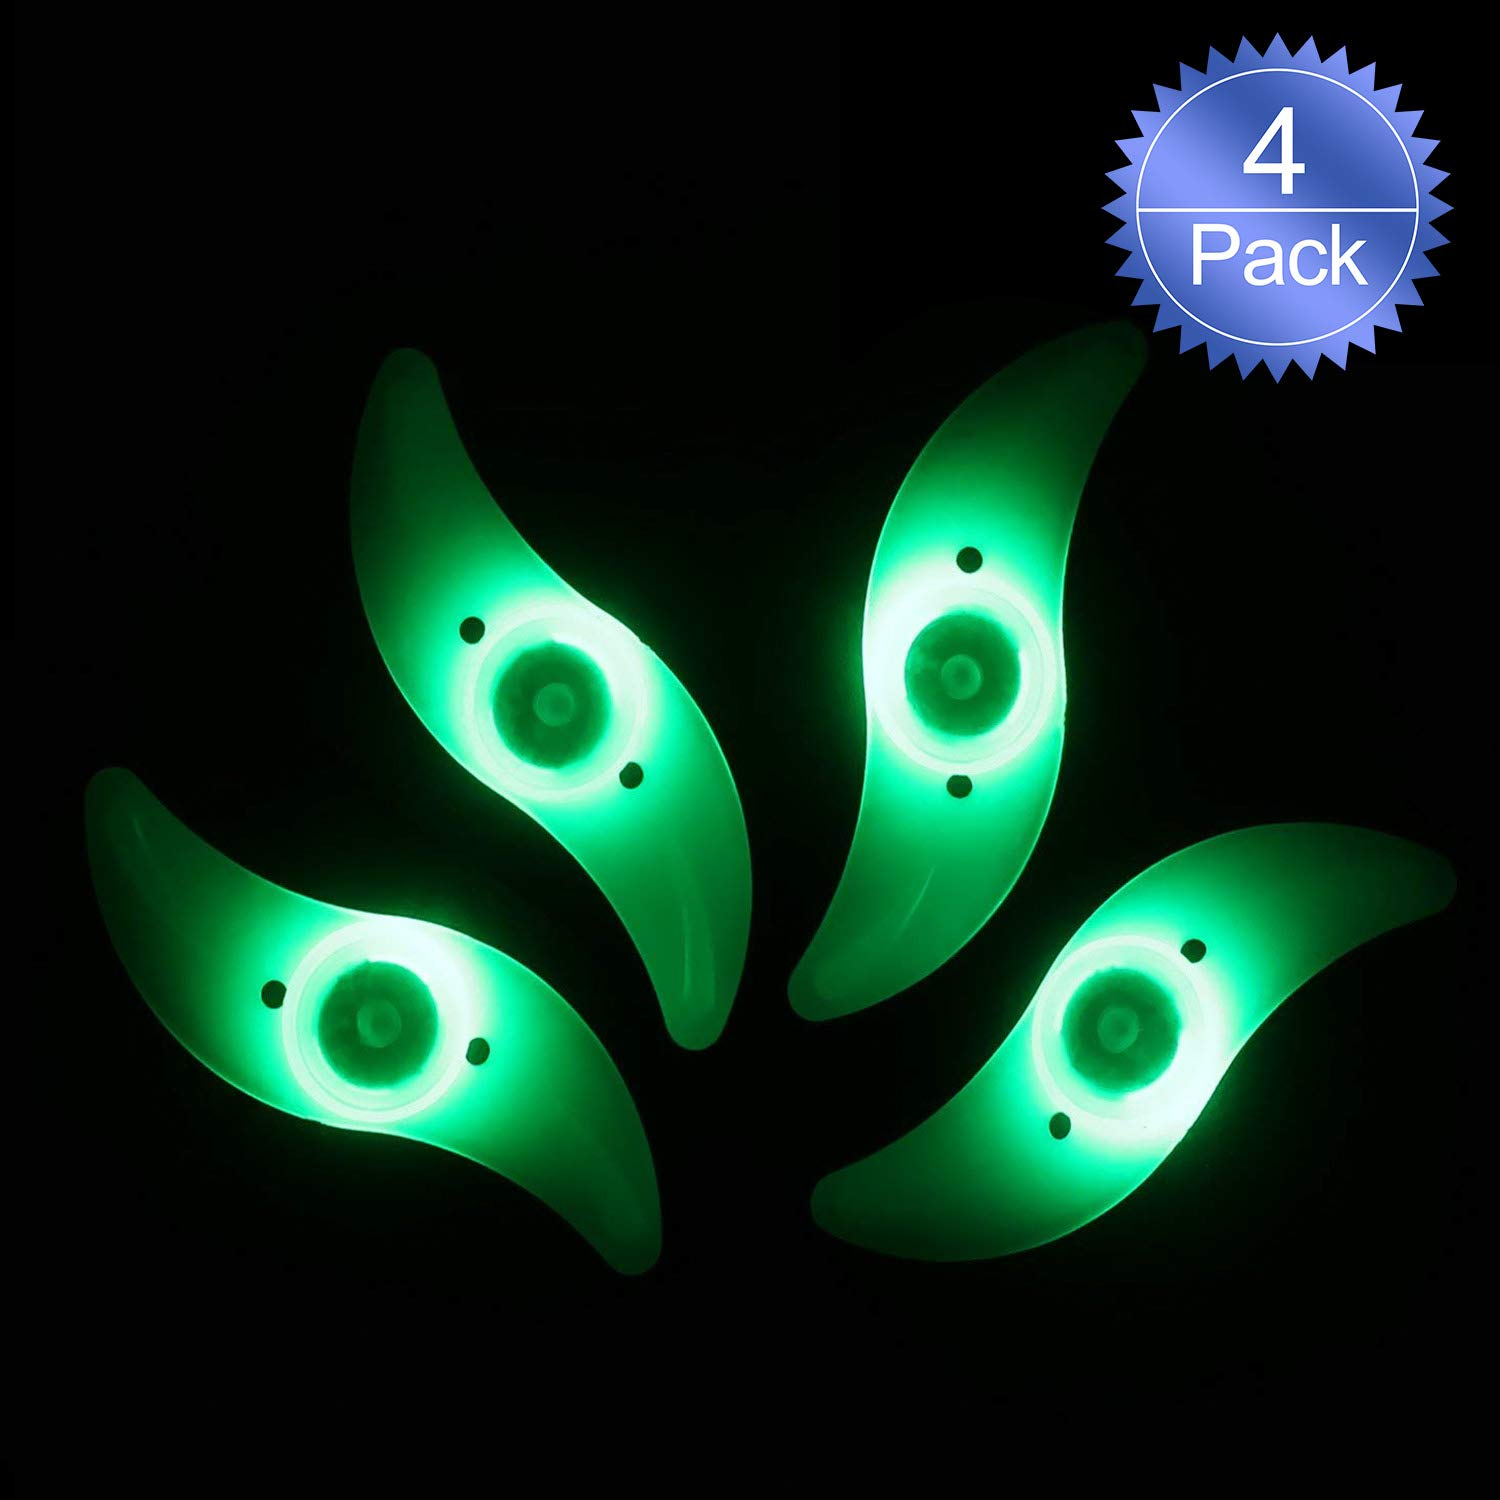 Oumers 4pcs Bike Spoke Light, Waterproof Bike Wheel Rim Light Cycling Tire Valve Spoke Light with 3 LED Flash Modes Neon Lamps Used for Safe and Warning (Green)